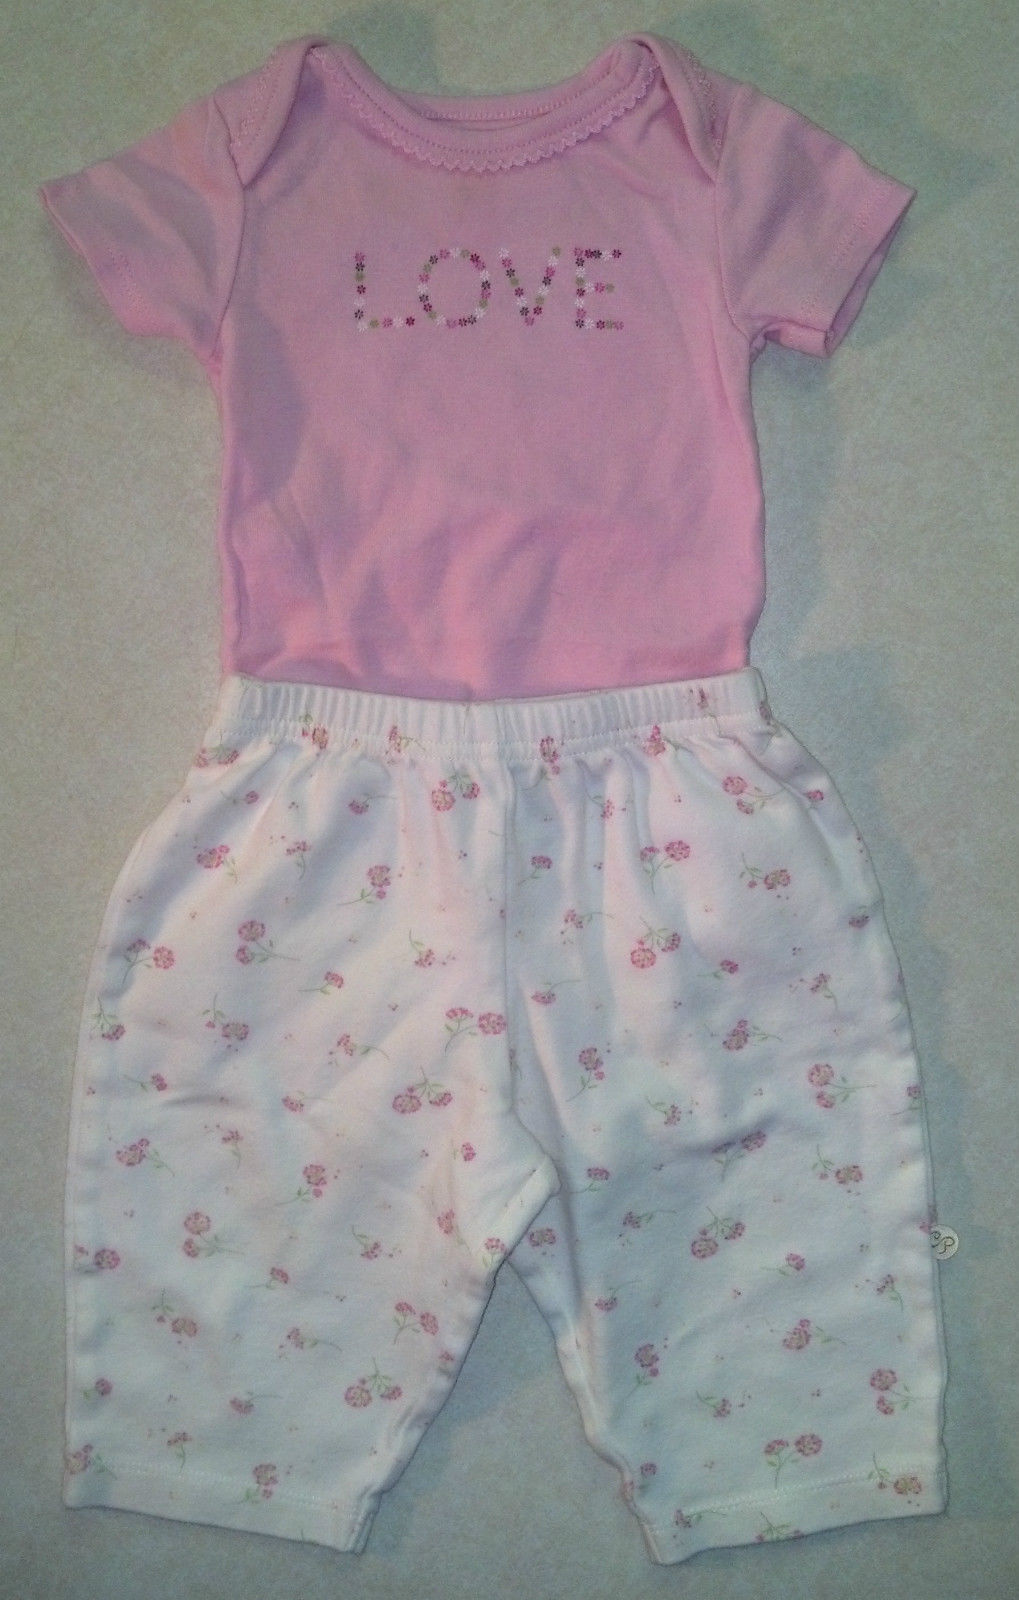 Girl's Sz 6 M Month 2 Piece Outfit Carter's Pink Love Top & Cream Floral Pants